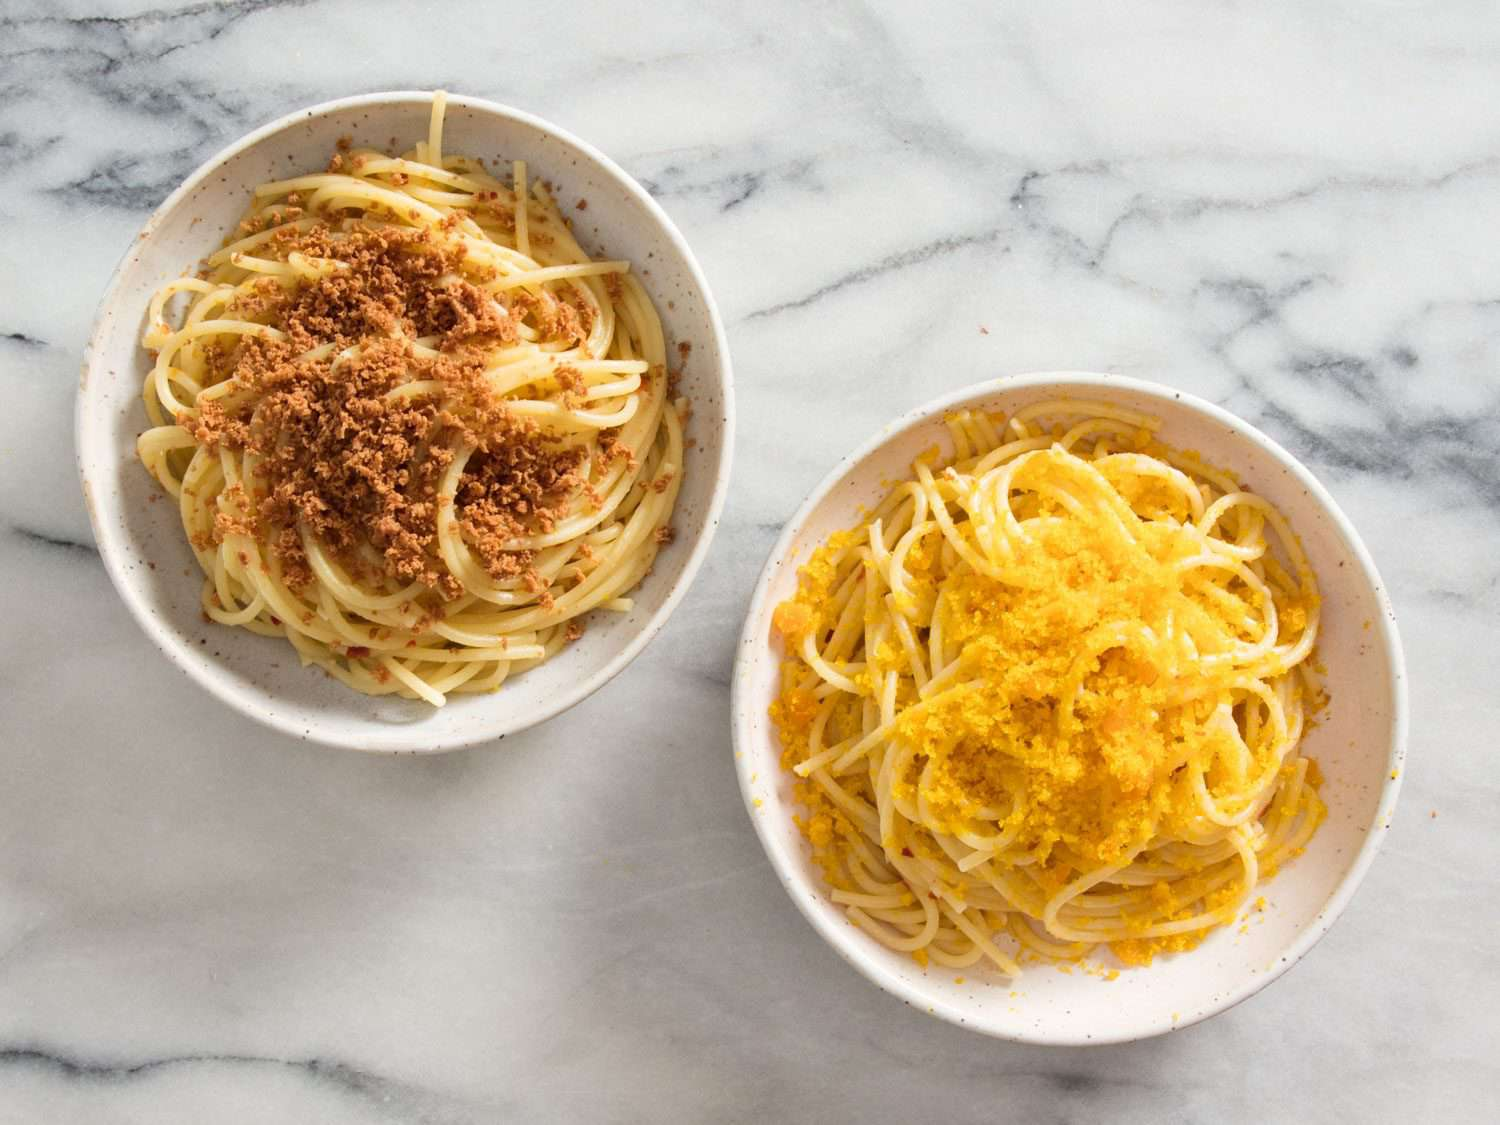 Two bowls of pasta side by side, with tuna bottarga grated over bowl on left, and mullet bottarga grated over bowl on right